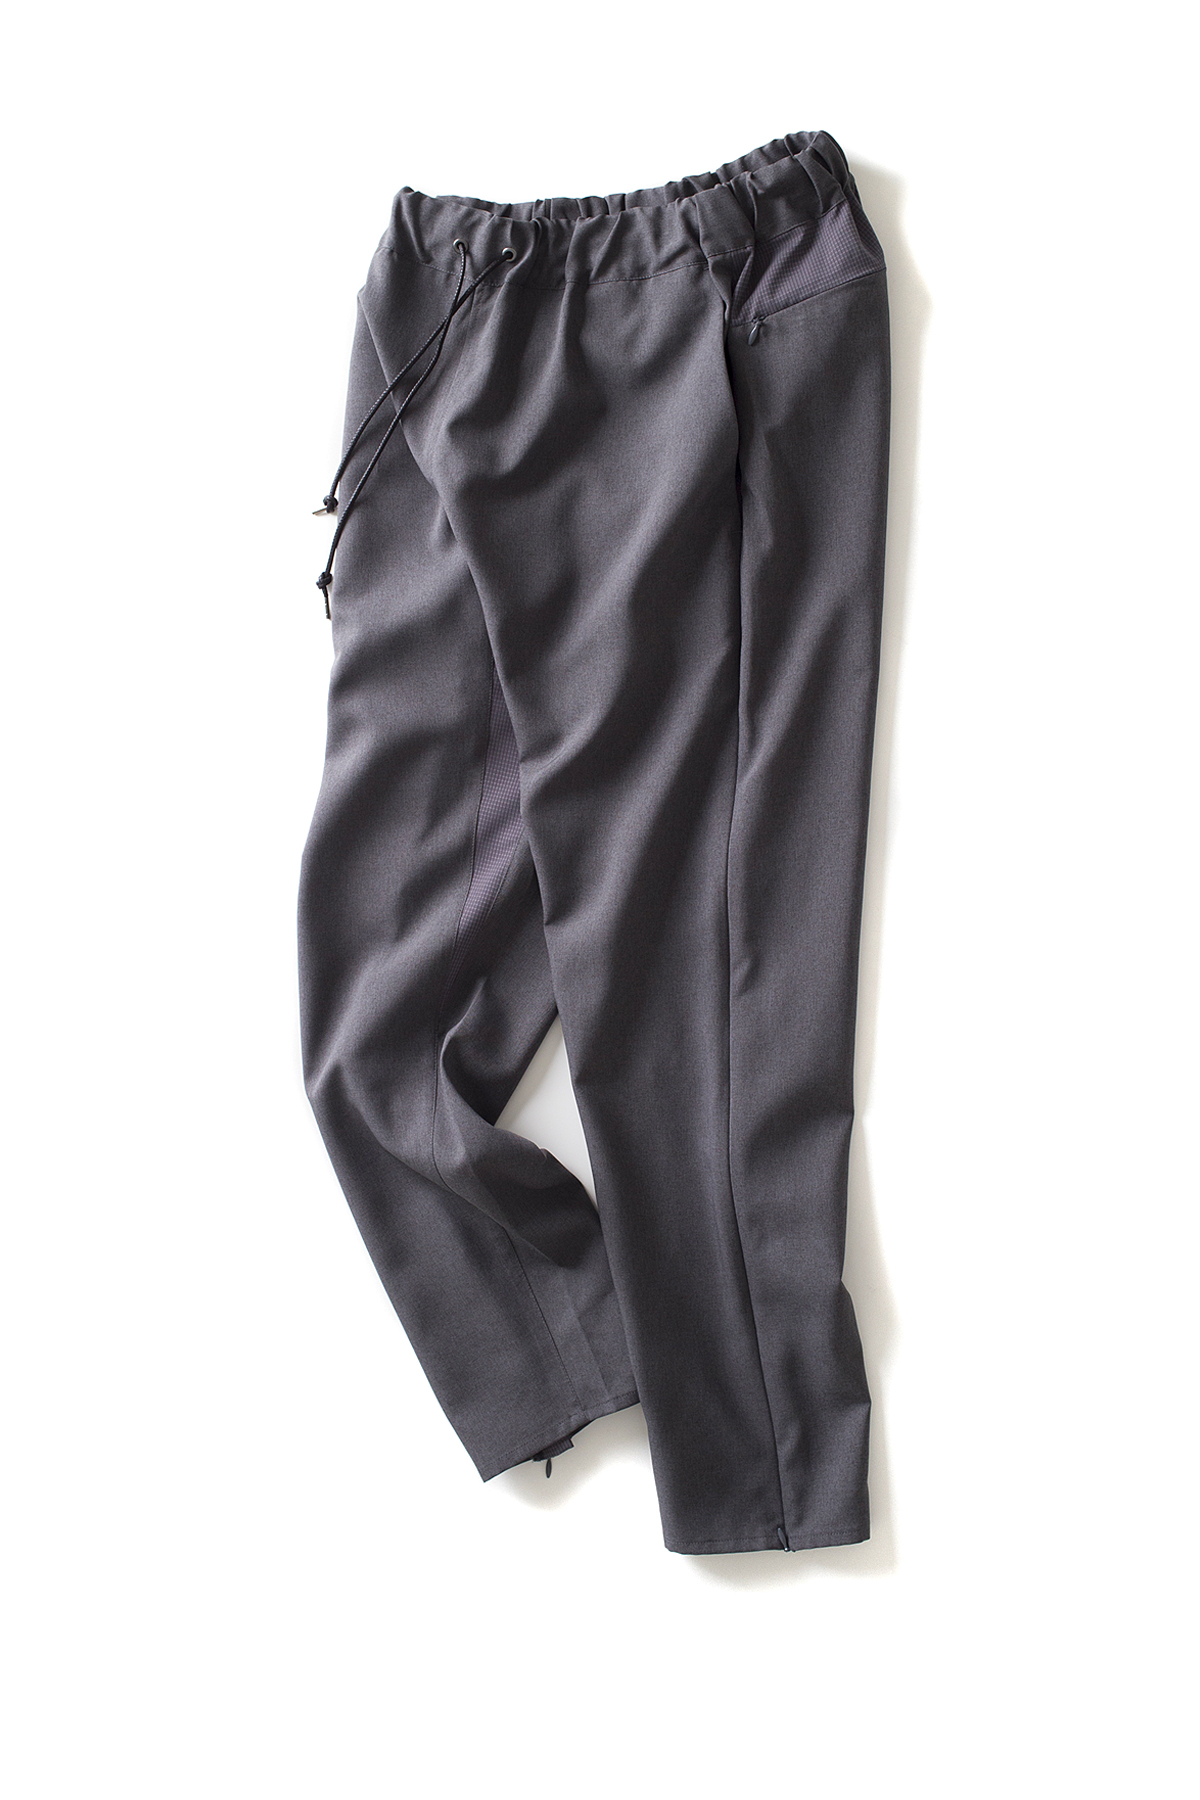 EEL : Bench Pants (Charcoal)